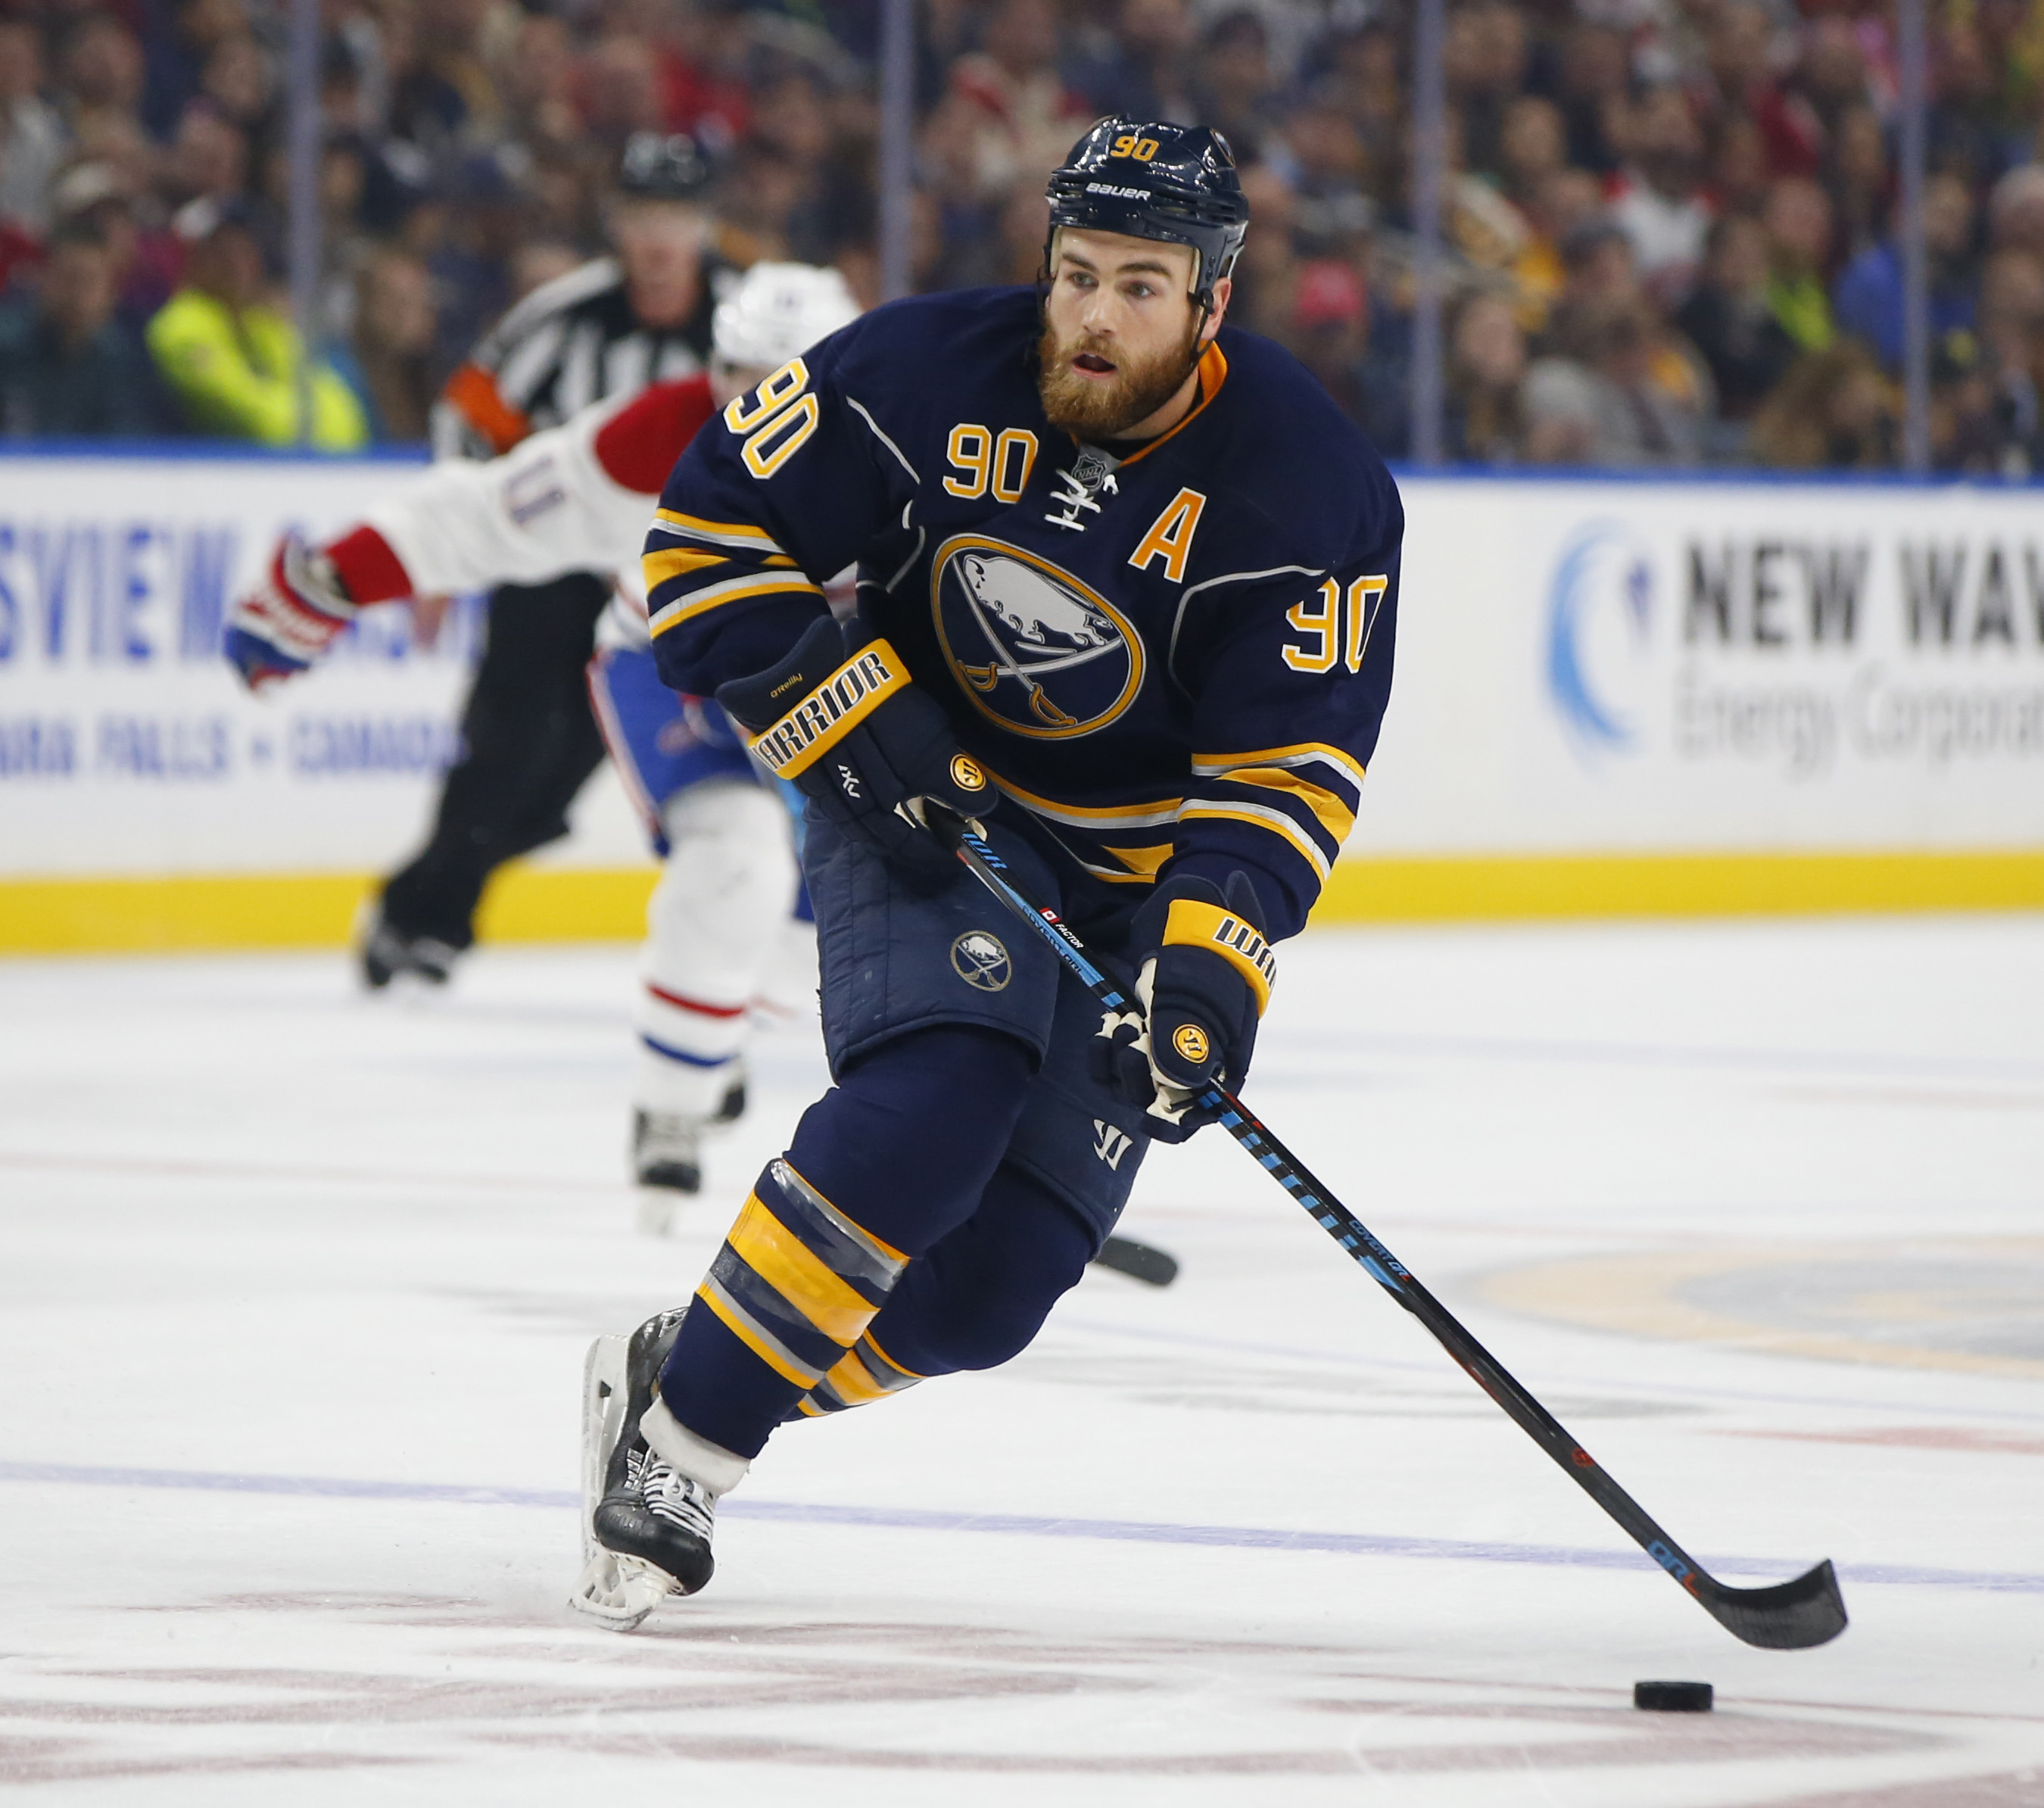 Ryan O'Reilly takes pride in his faceoffs, and it shows in the NHL rankings. (Harry Scull Jr./Buffalo News)